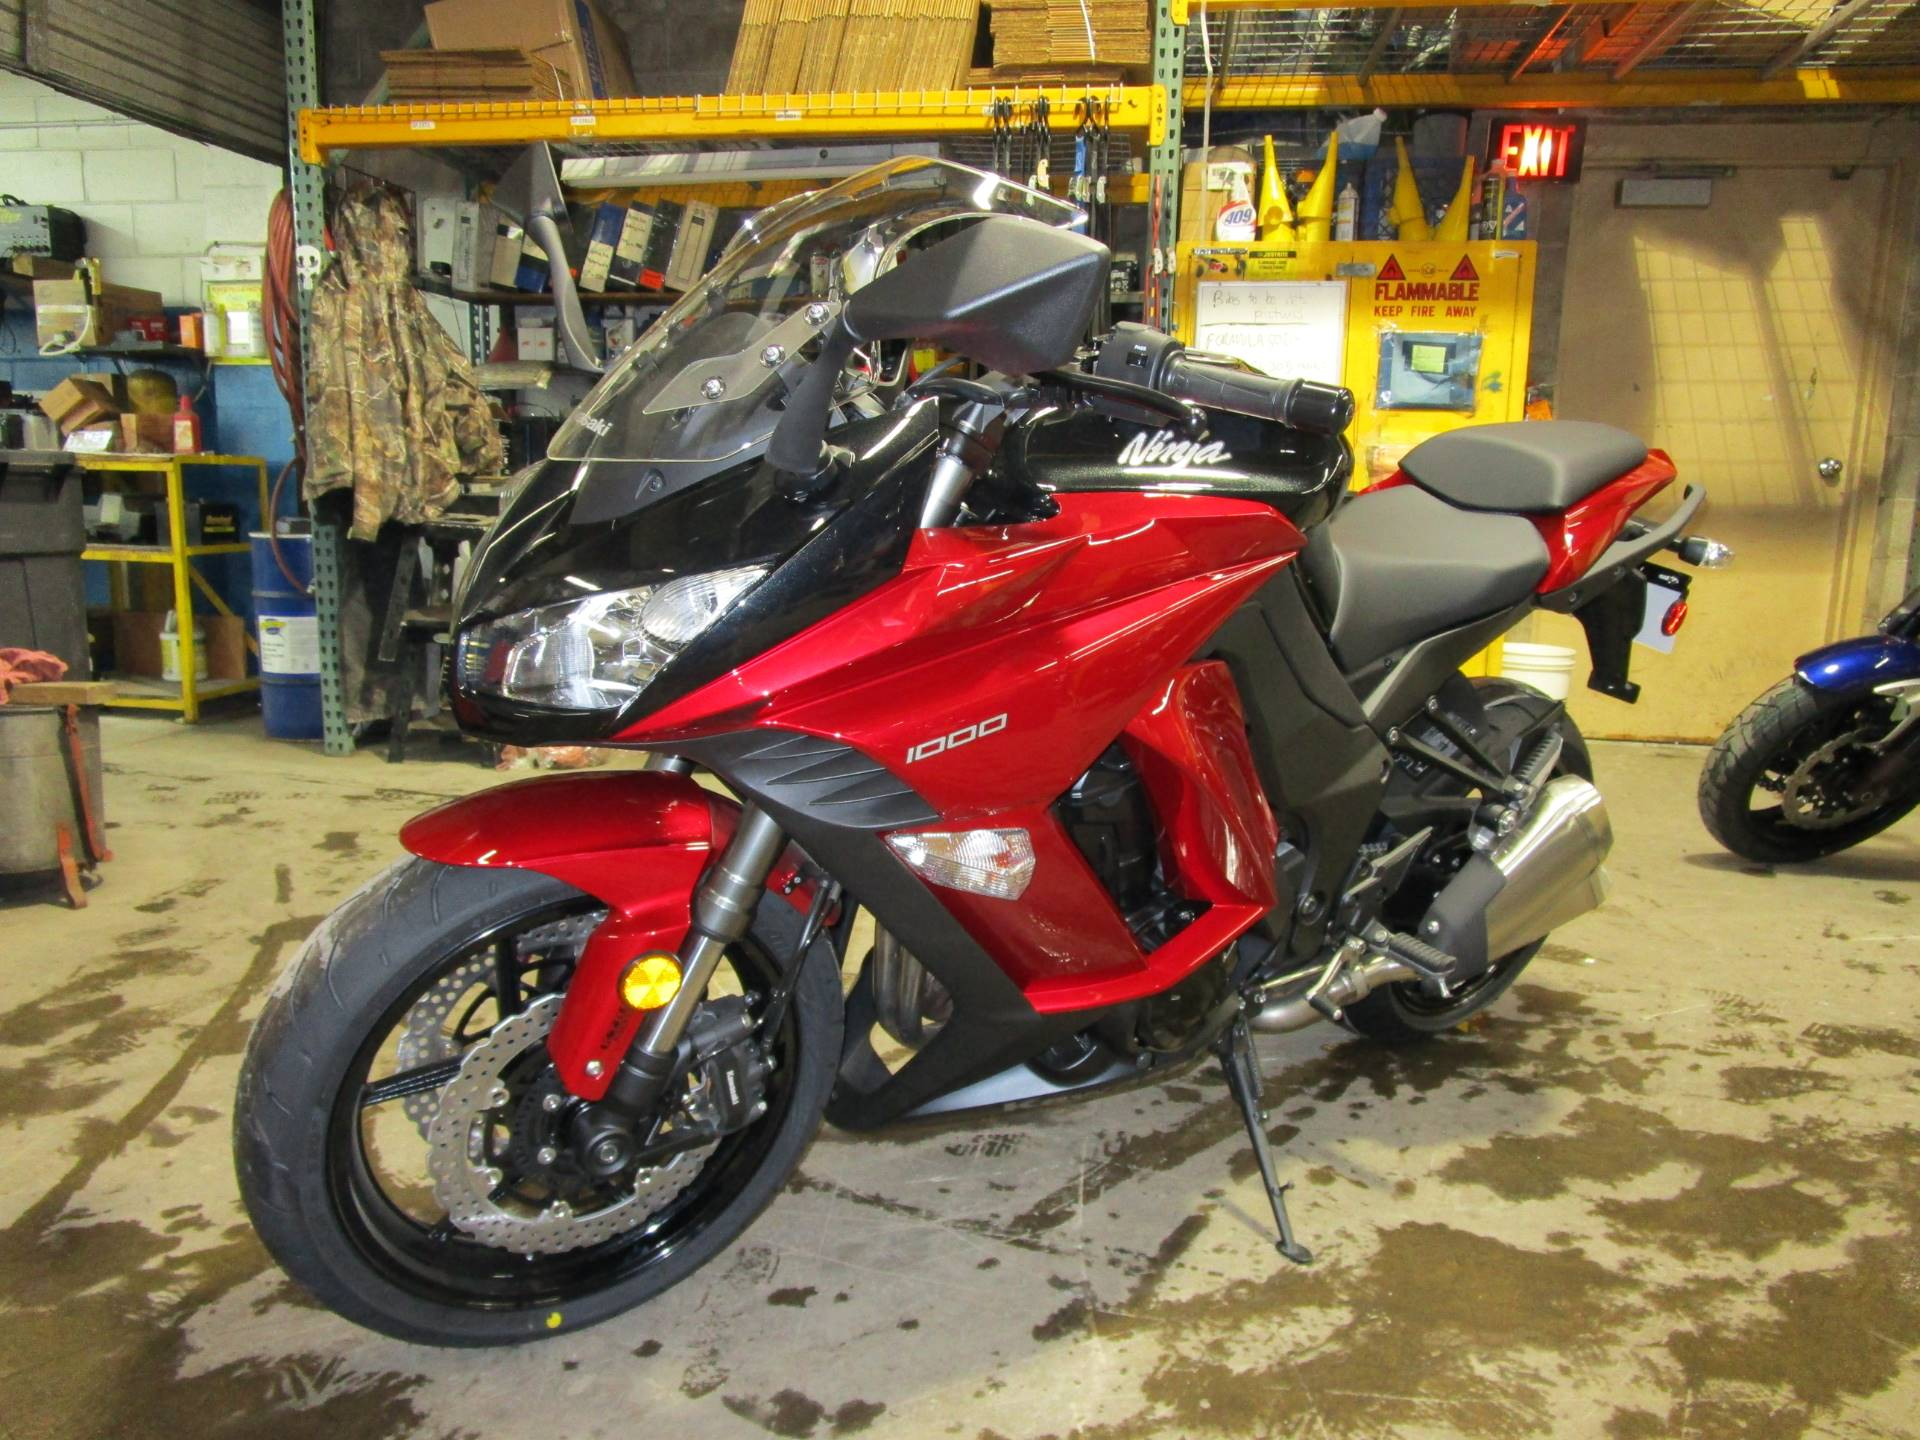 2016 Kawasaki Ninja 1000 ABS in Brookfield, Wisconsin